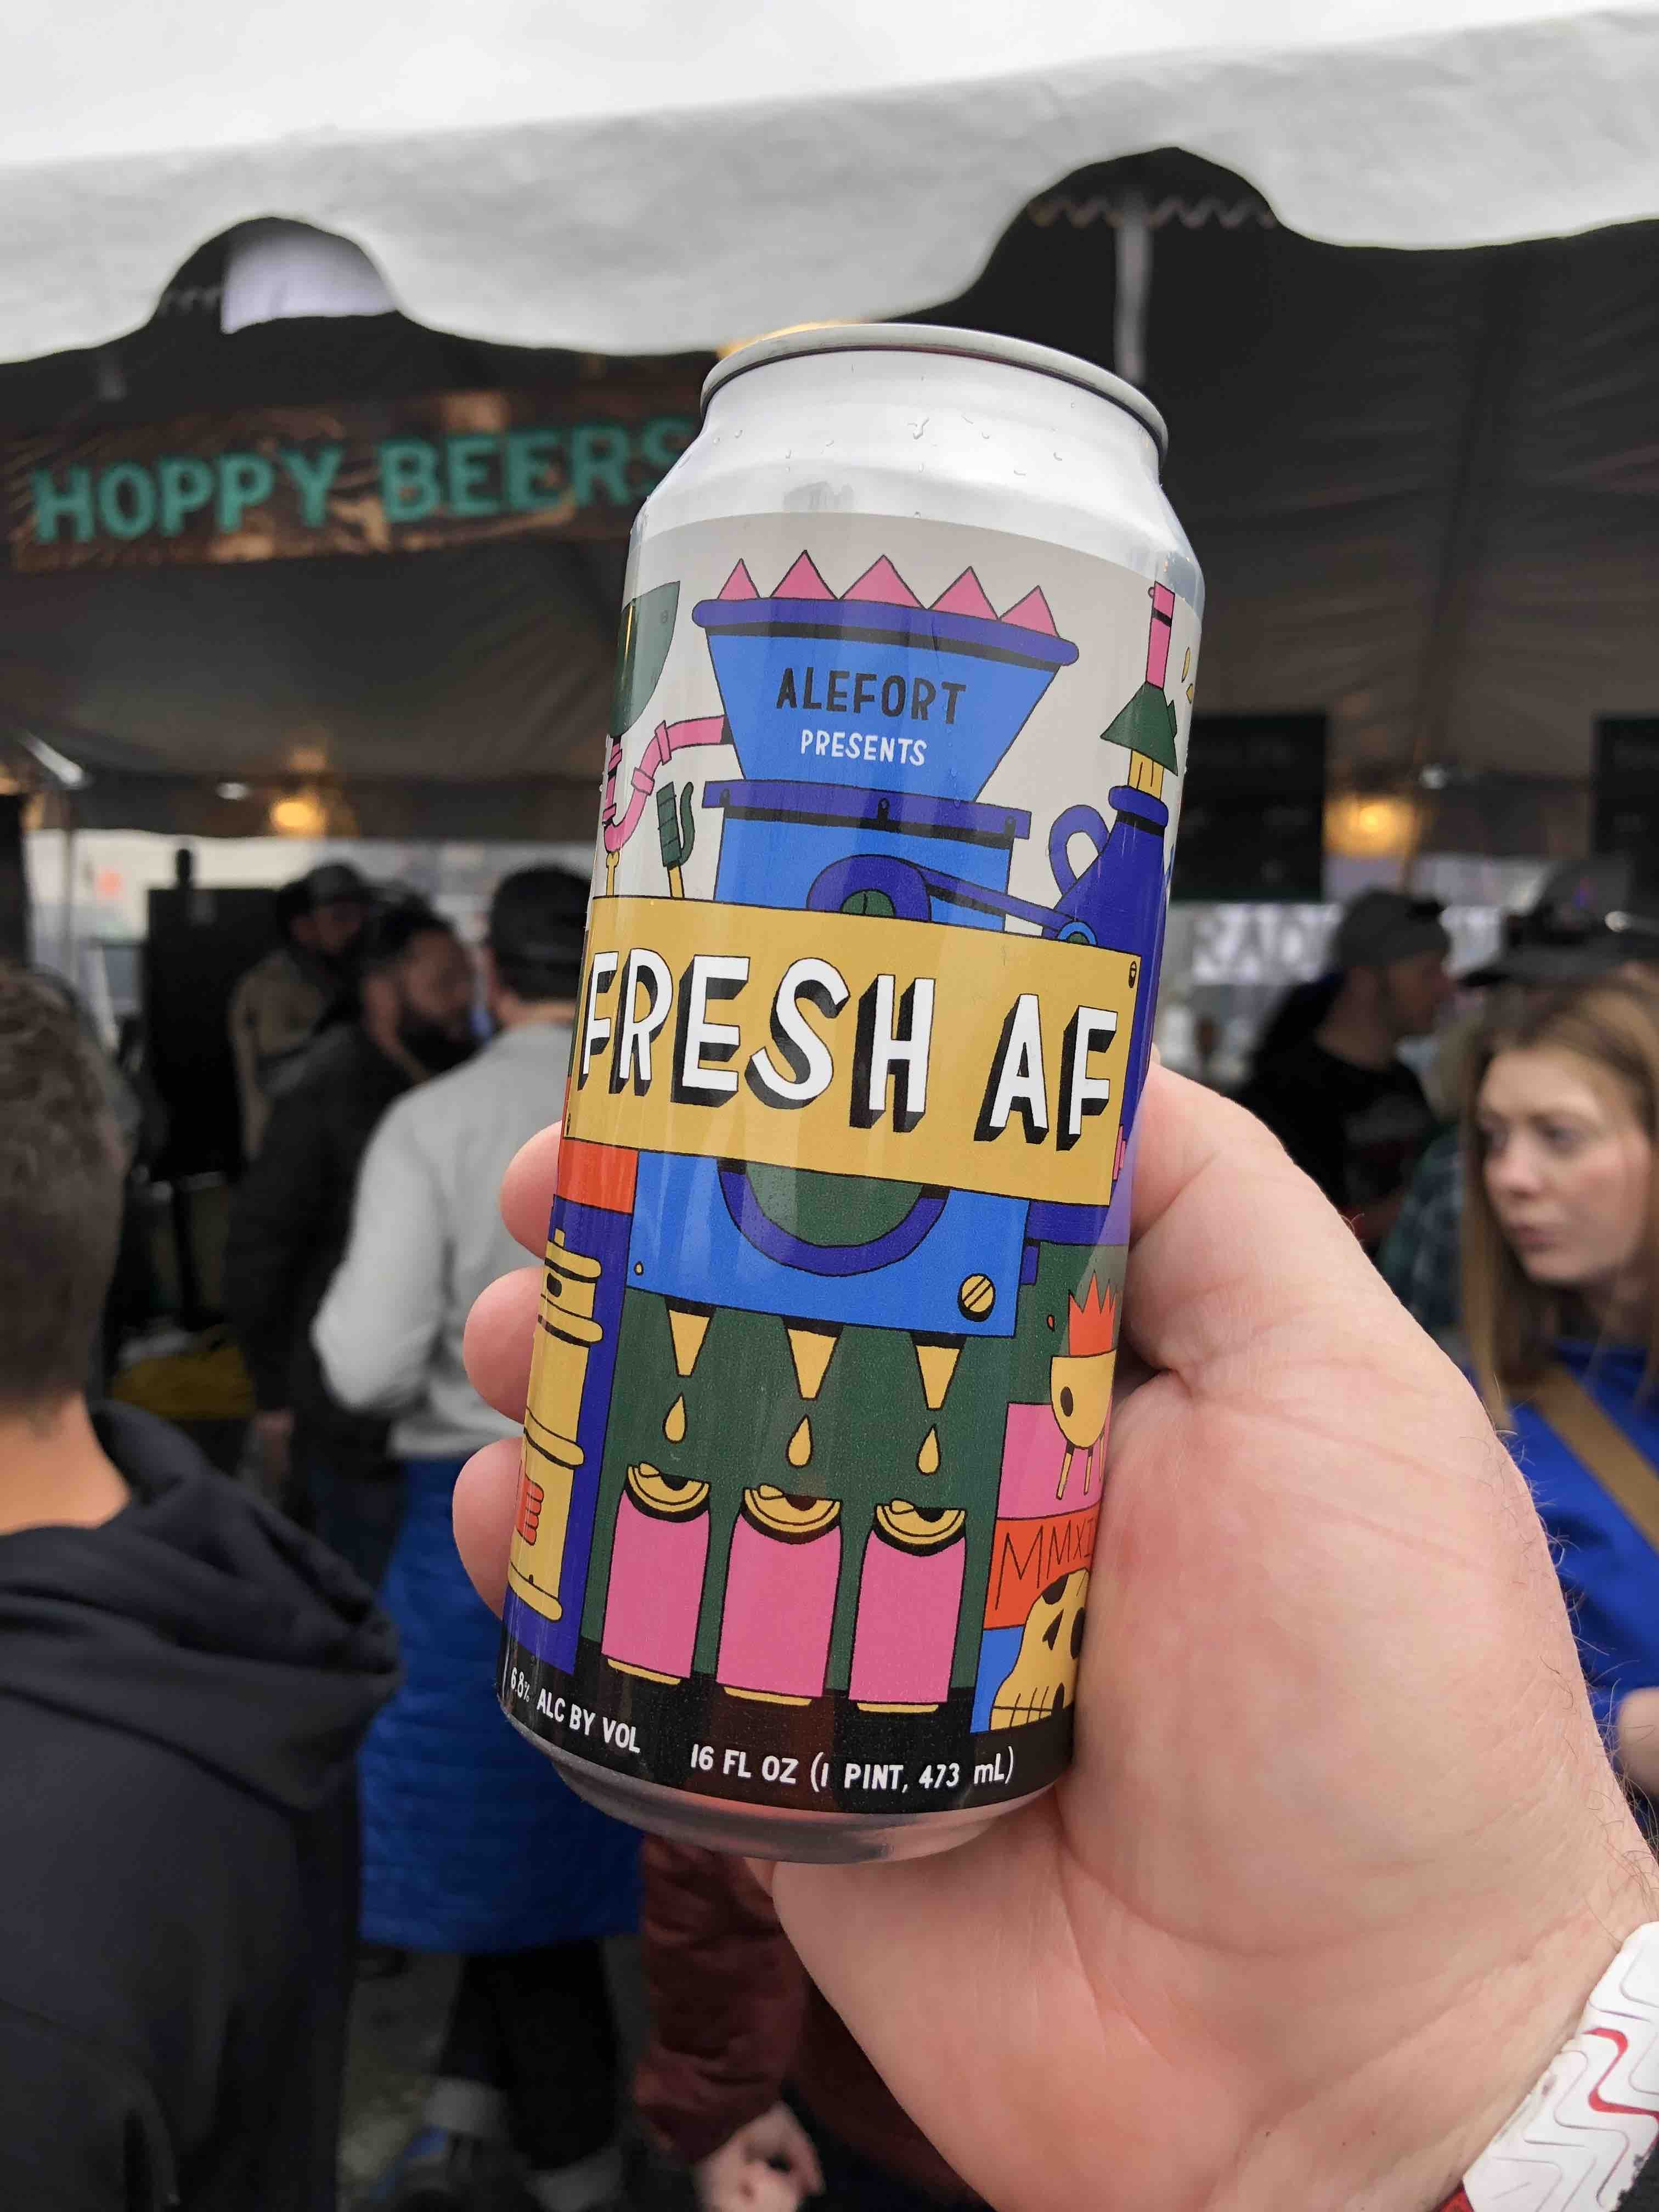 A can of Alefort Presents Fresh AF from Barley Brown's Beer during the 2019 Treefort Music Fest.